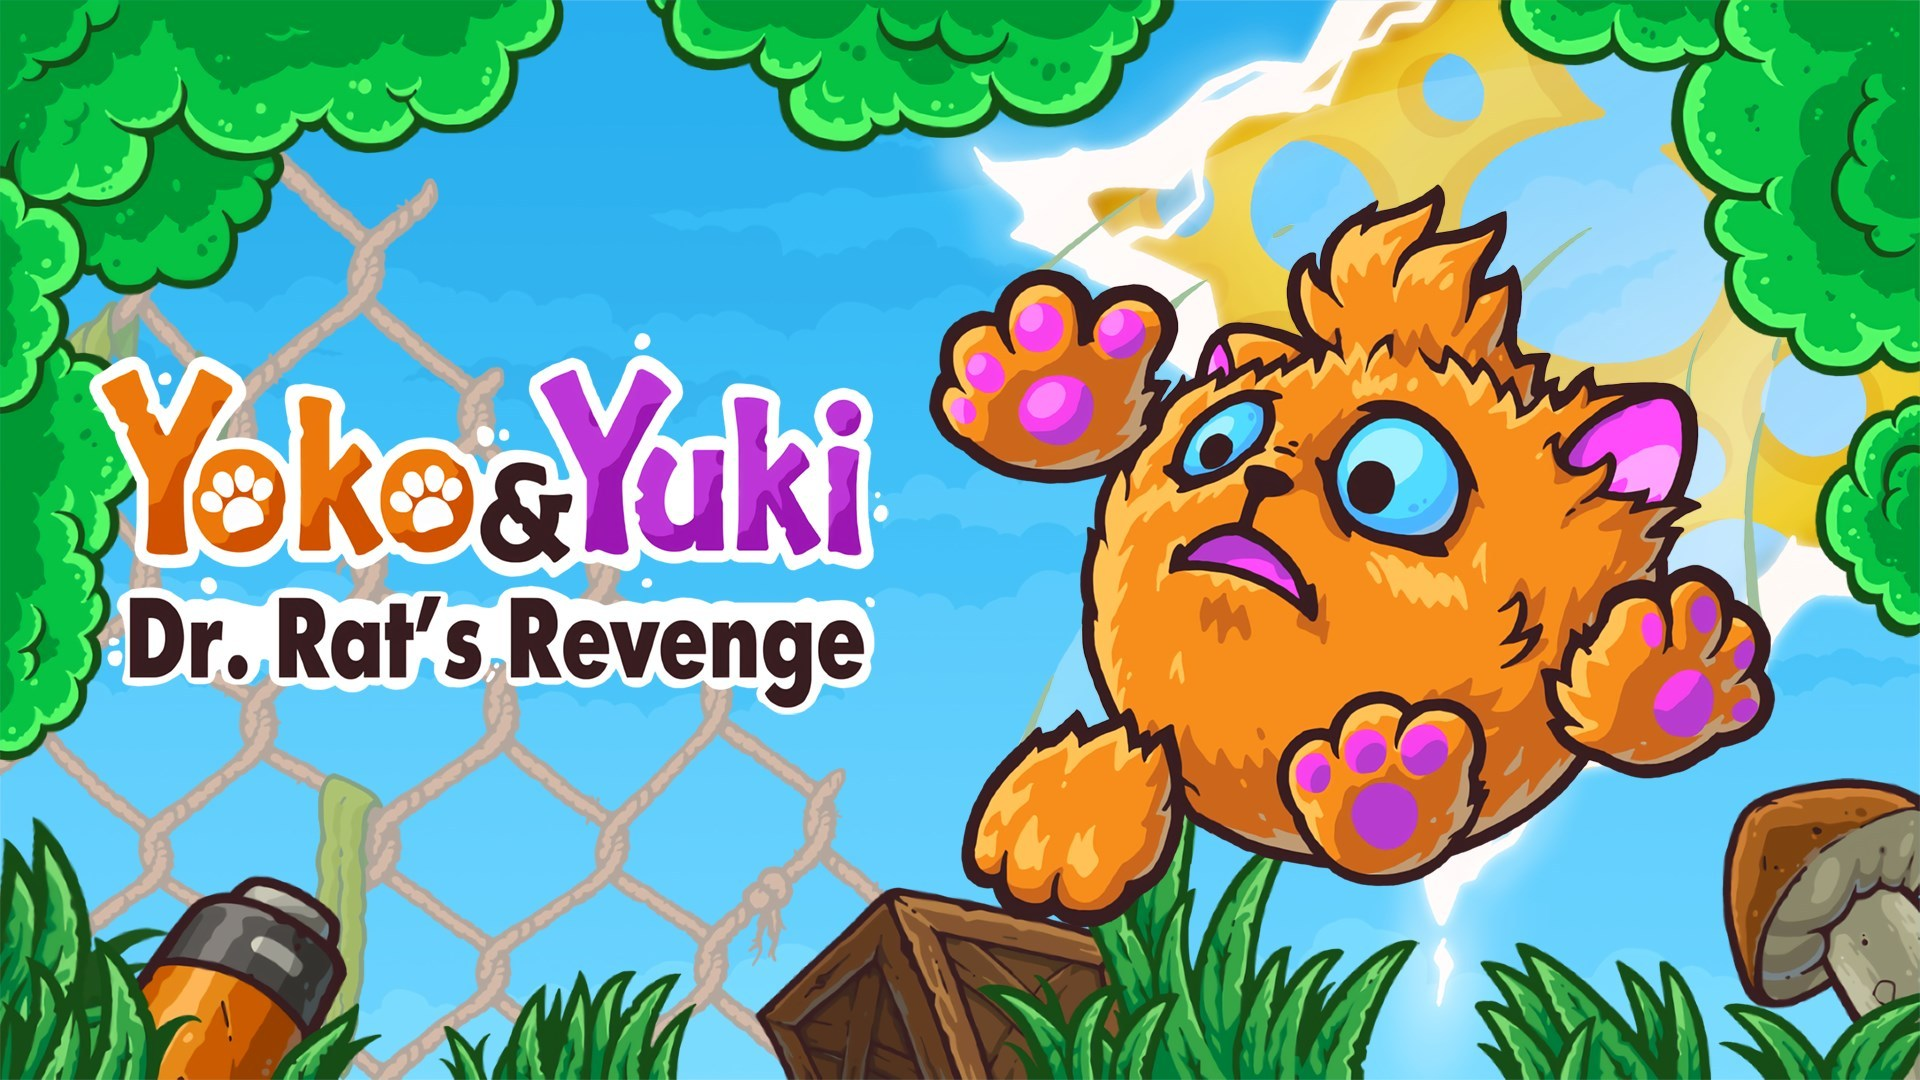 Yoko & Yuki: Dr. Rat's Revenge Is Now Available For Digital Pre-order And Pre-download On Xbox One And Xbox Series X|S 1